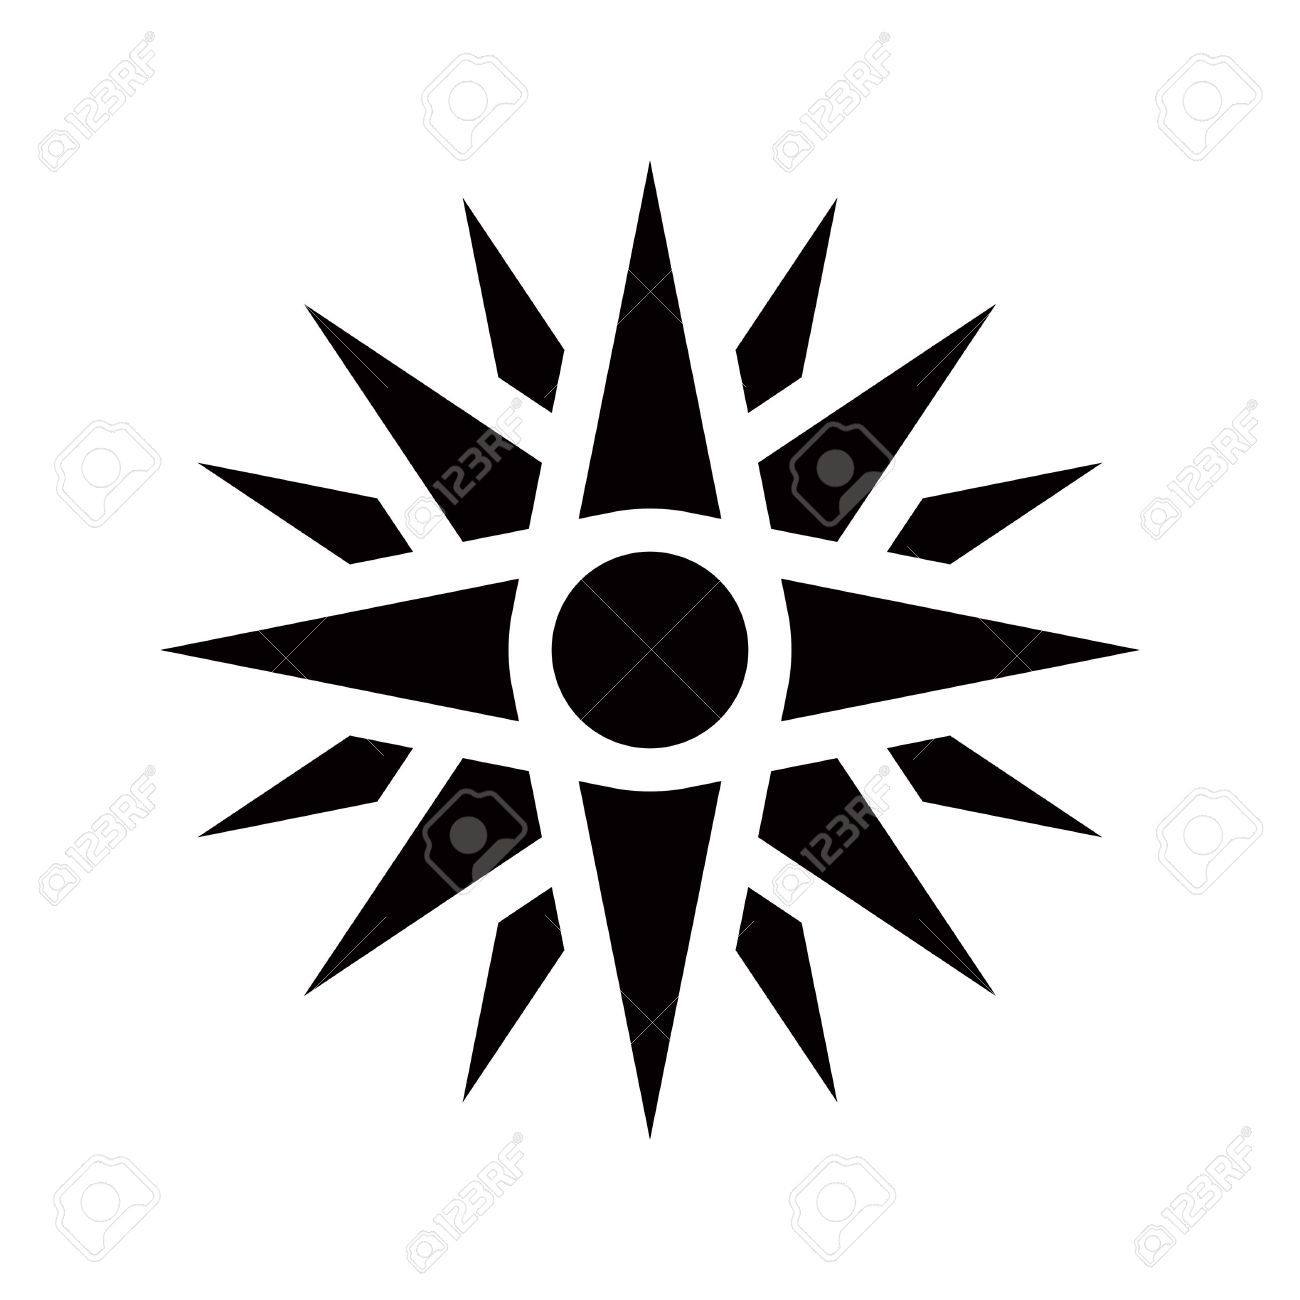 Images Of Latin Symbols For Love Spacehero